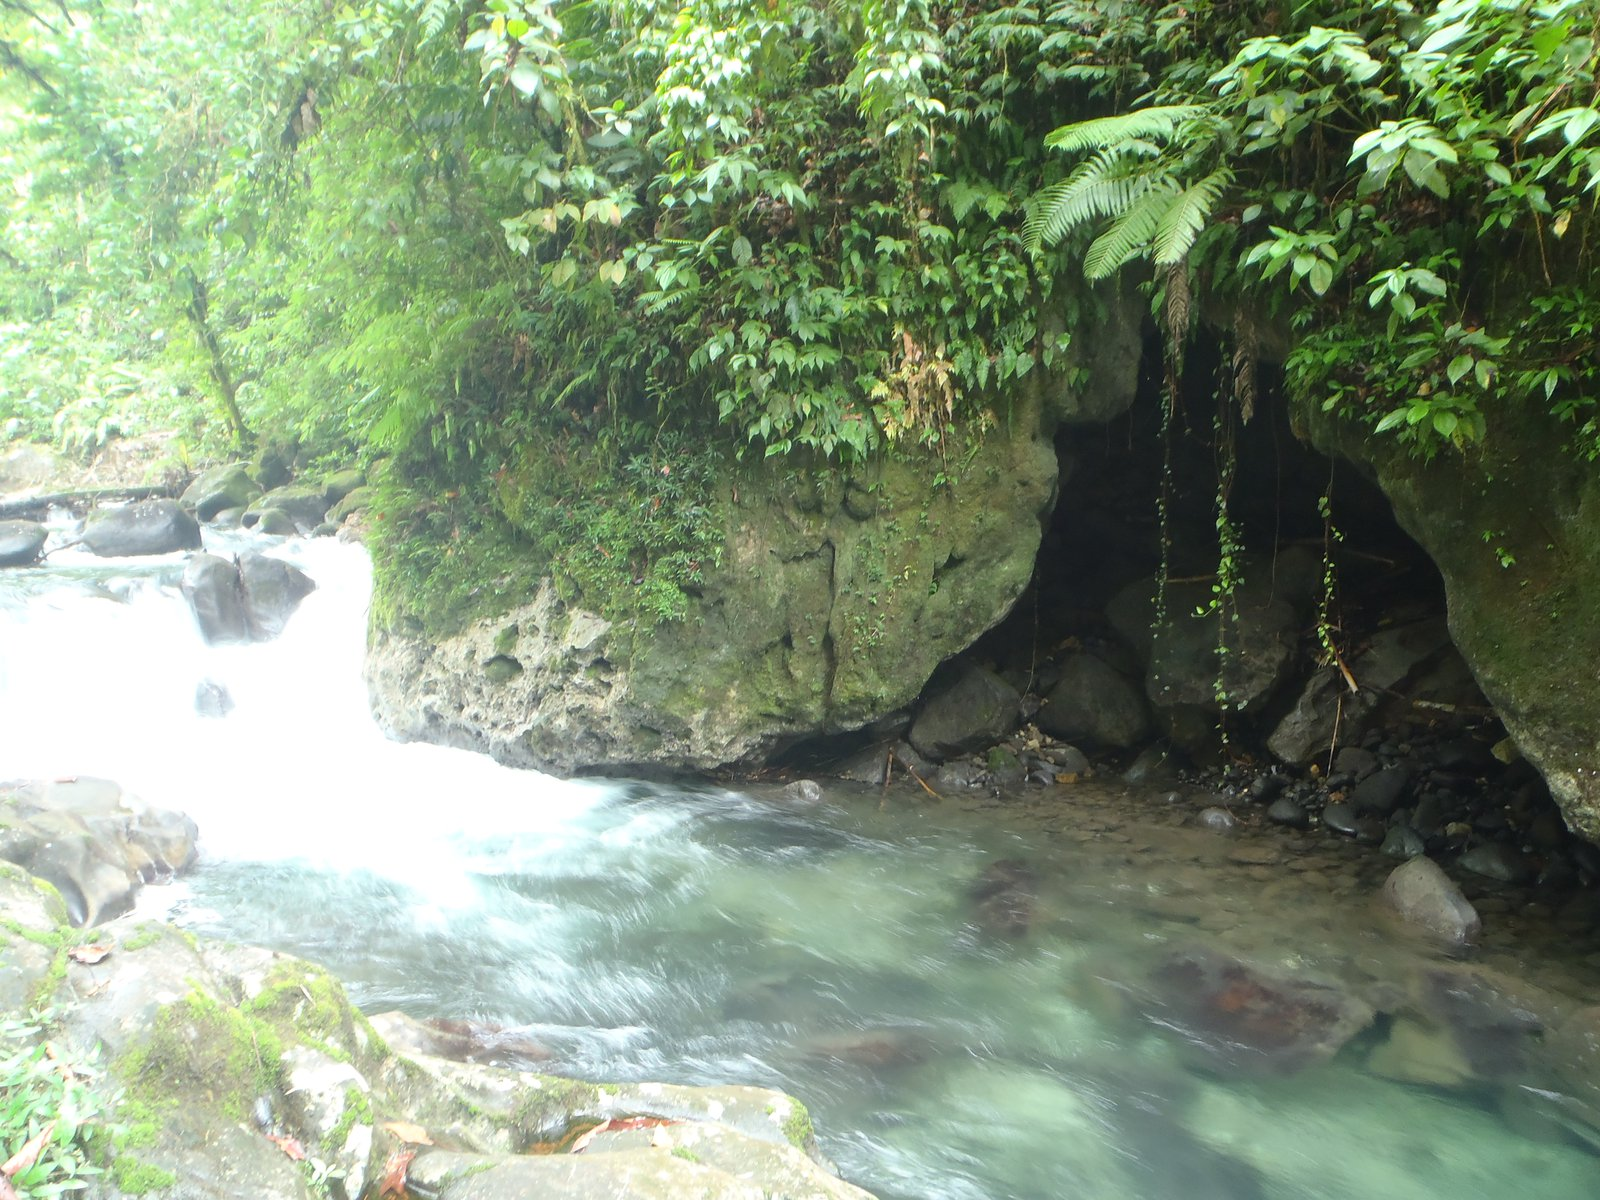 A flowing stream in Malaita.